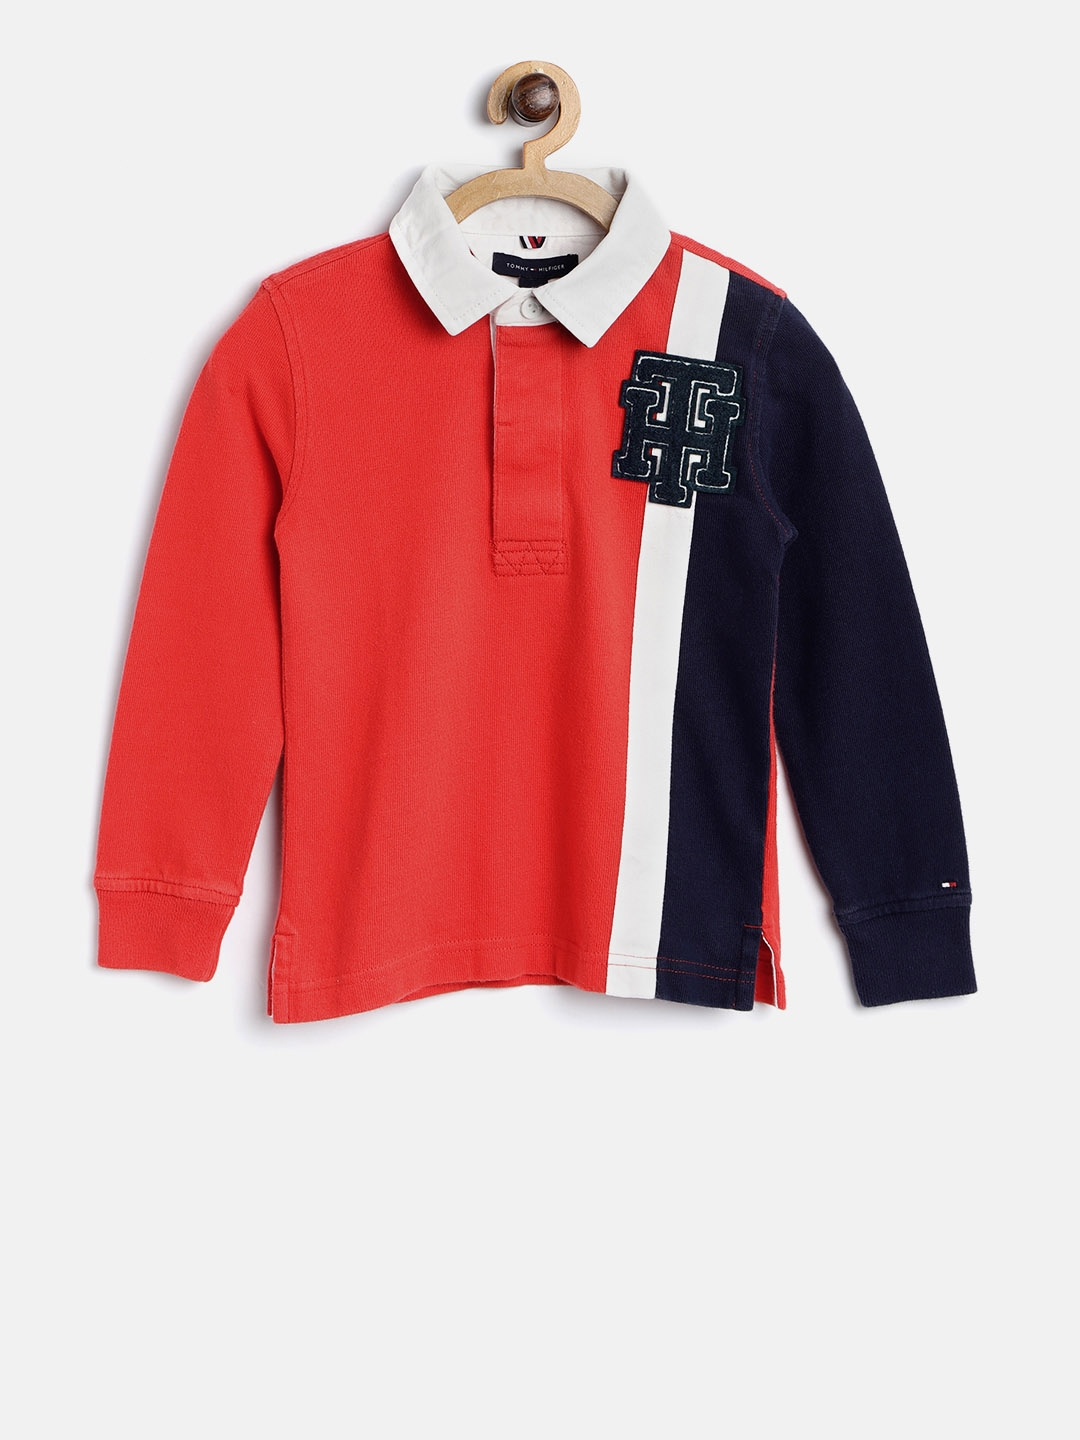 360a730f3 Buy Tommy Hilfiger Boys Red Colourblocked Polo Collar T Shirt ...